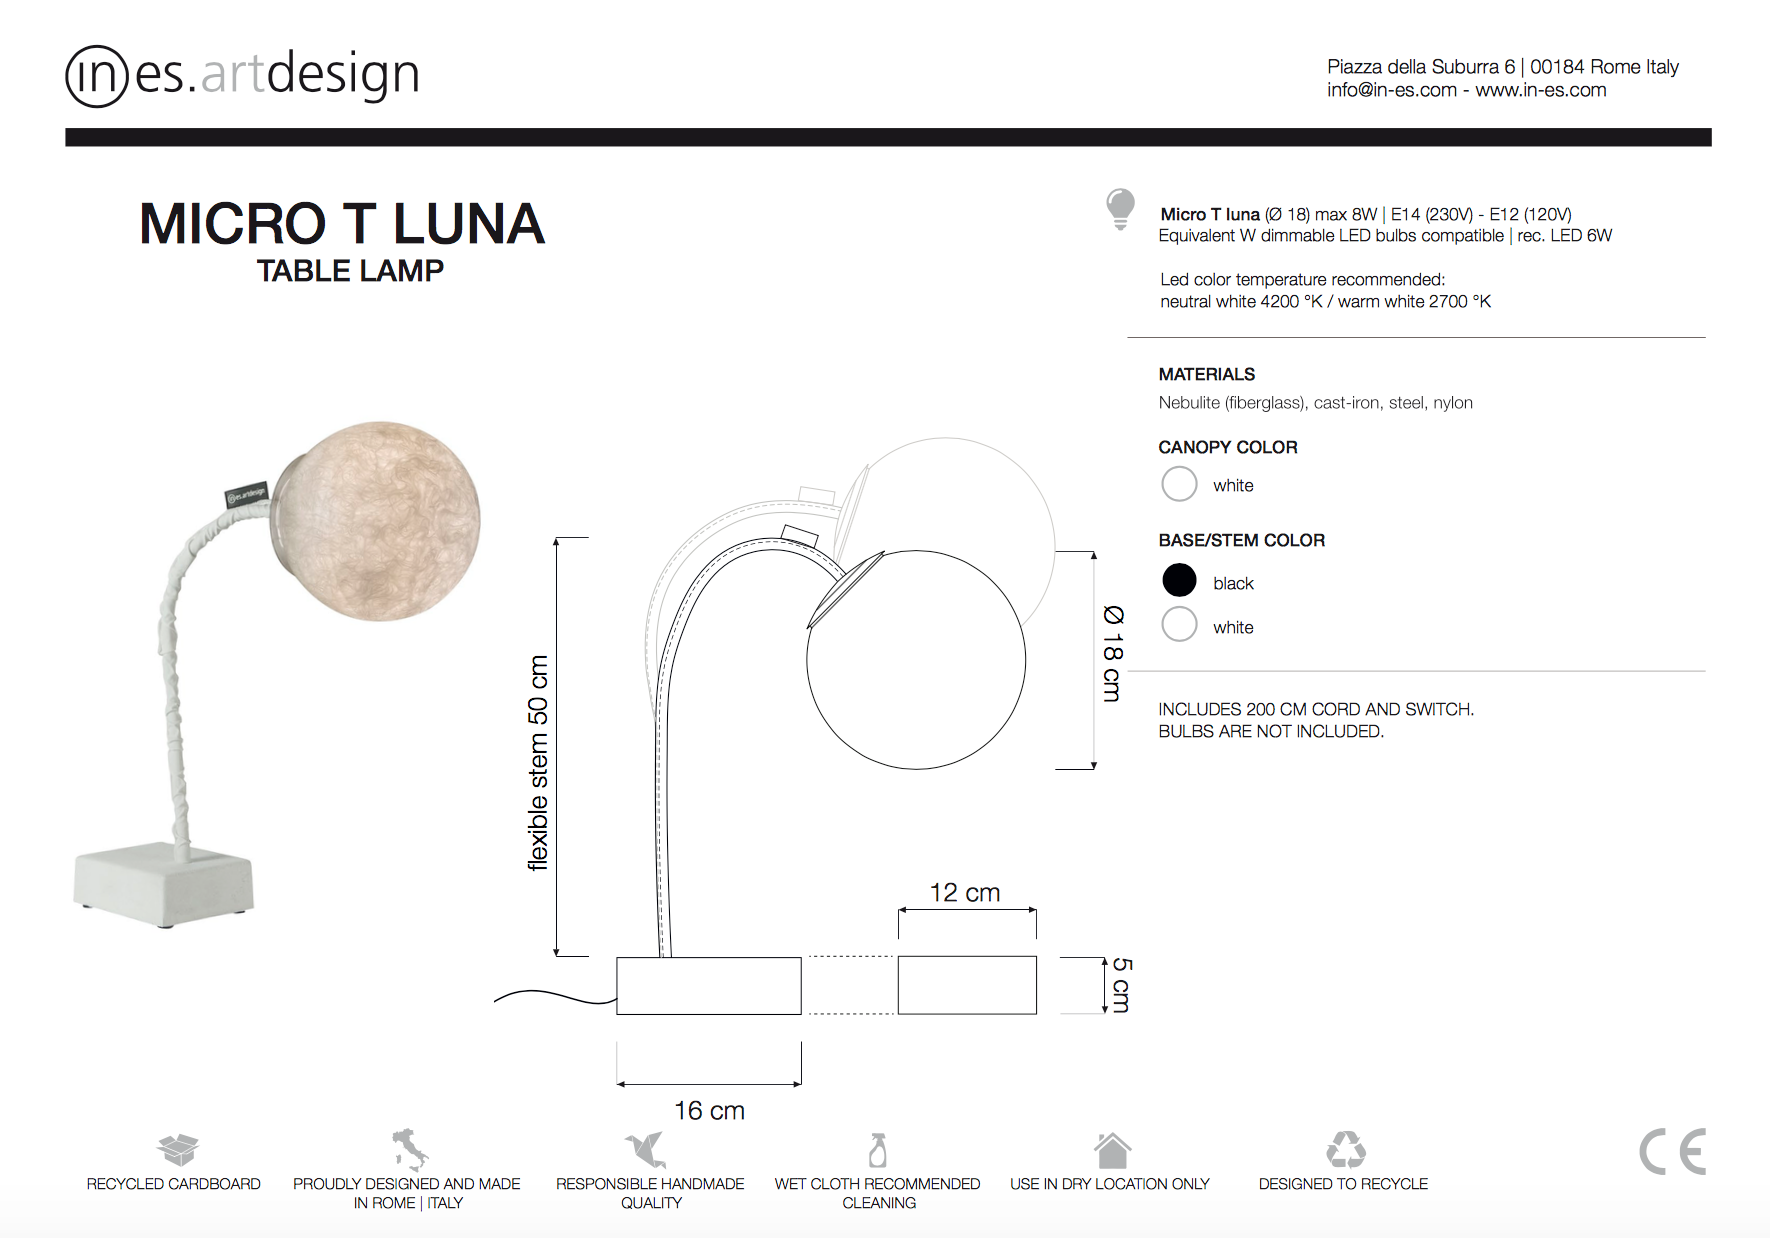 Micro T Luna Table Lamp In Es Art Design